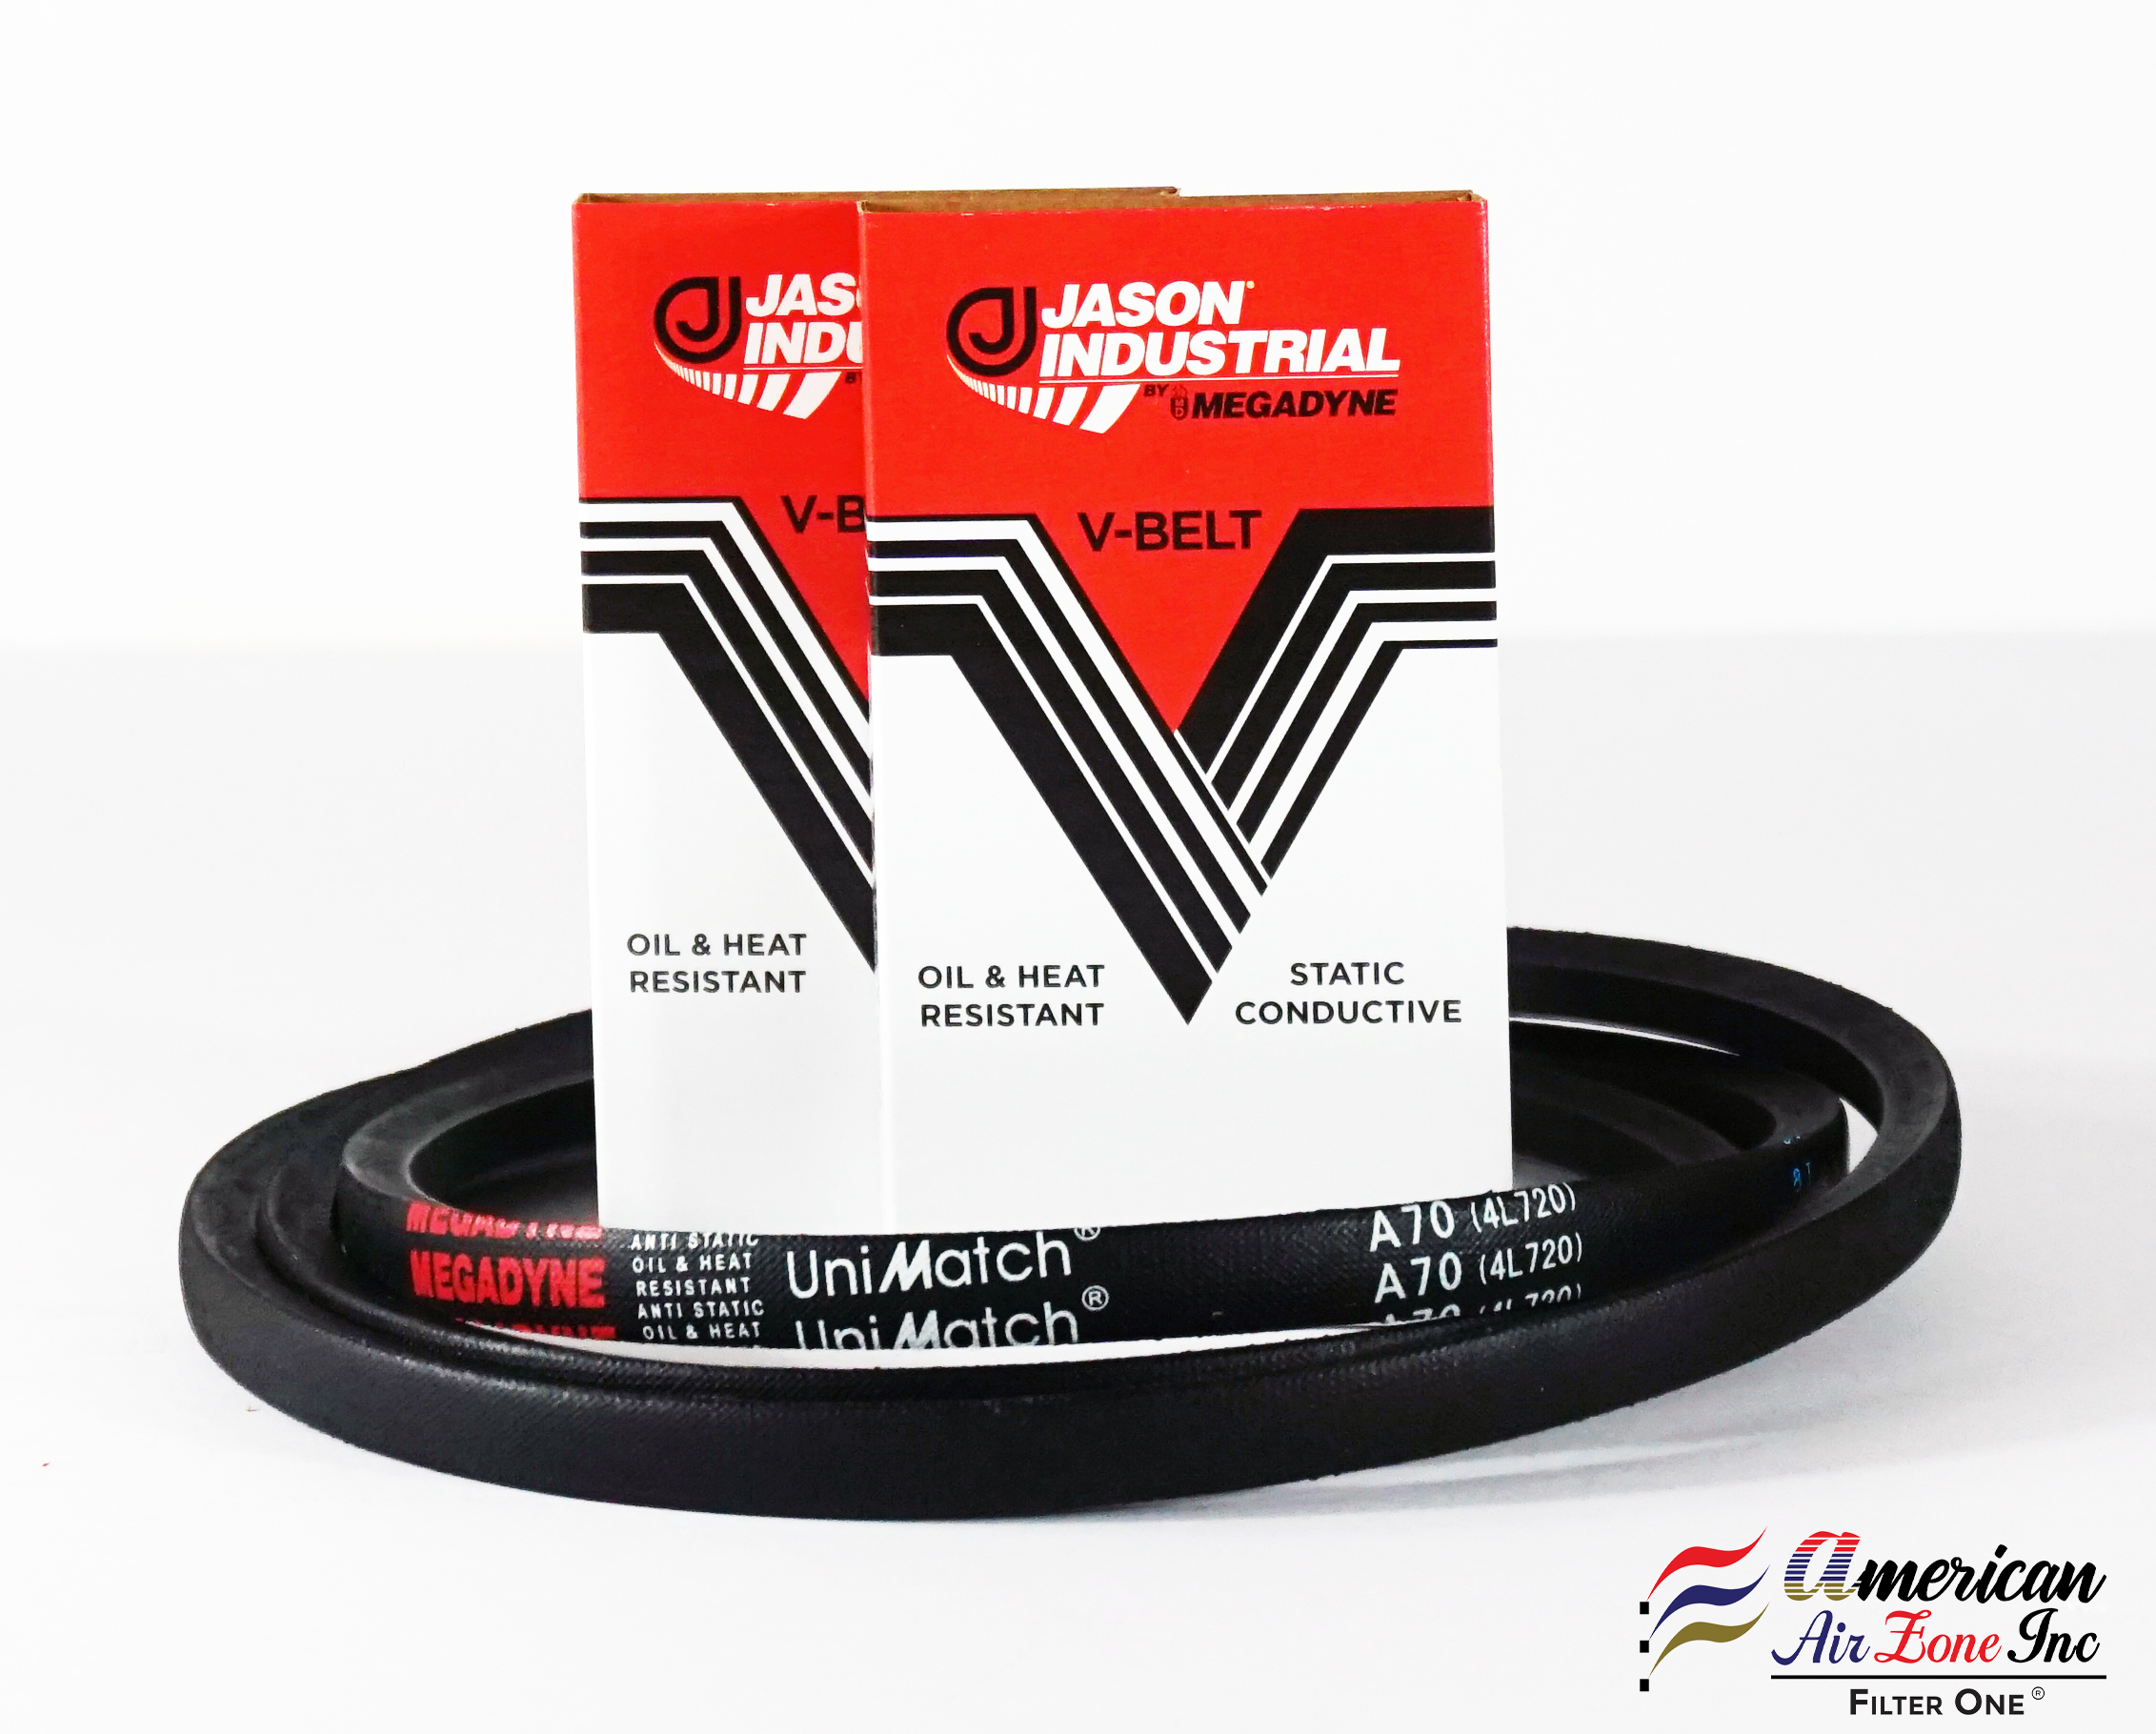 FACTORY NEW! A70//4L720 V-Belt 1//2 X 72 SAME DAY SHIPPING